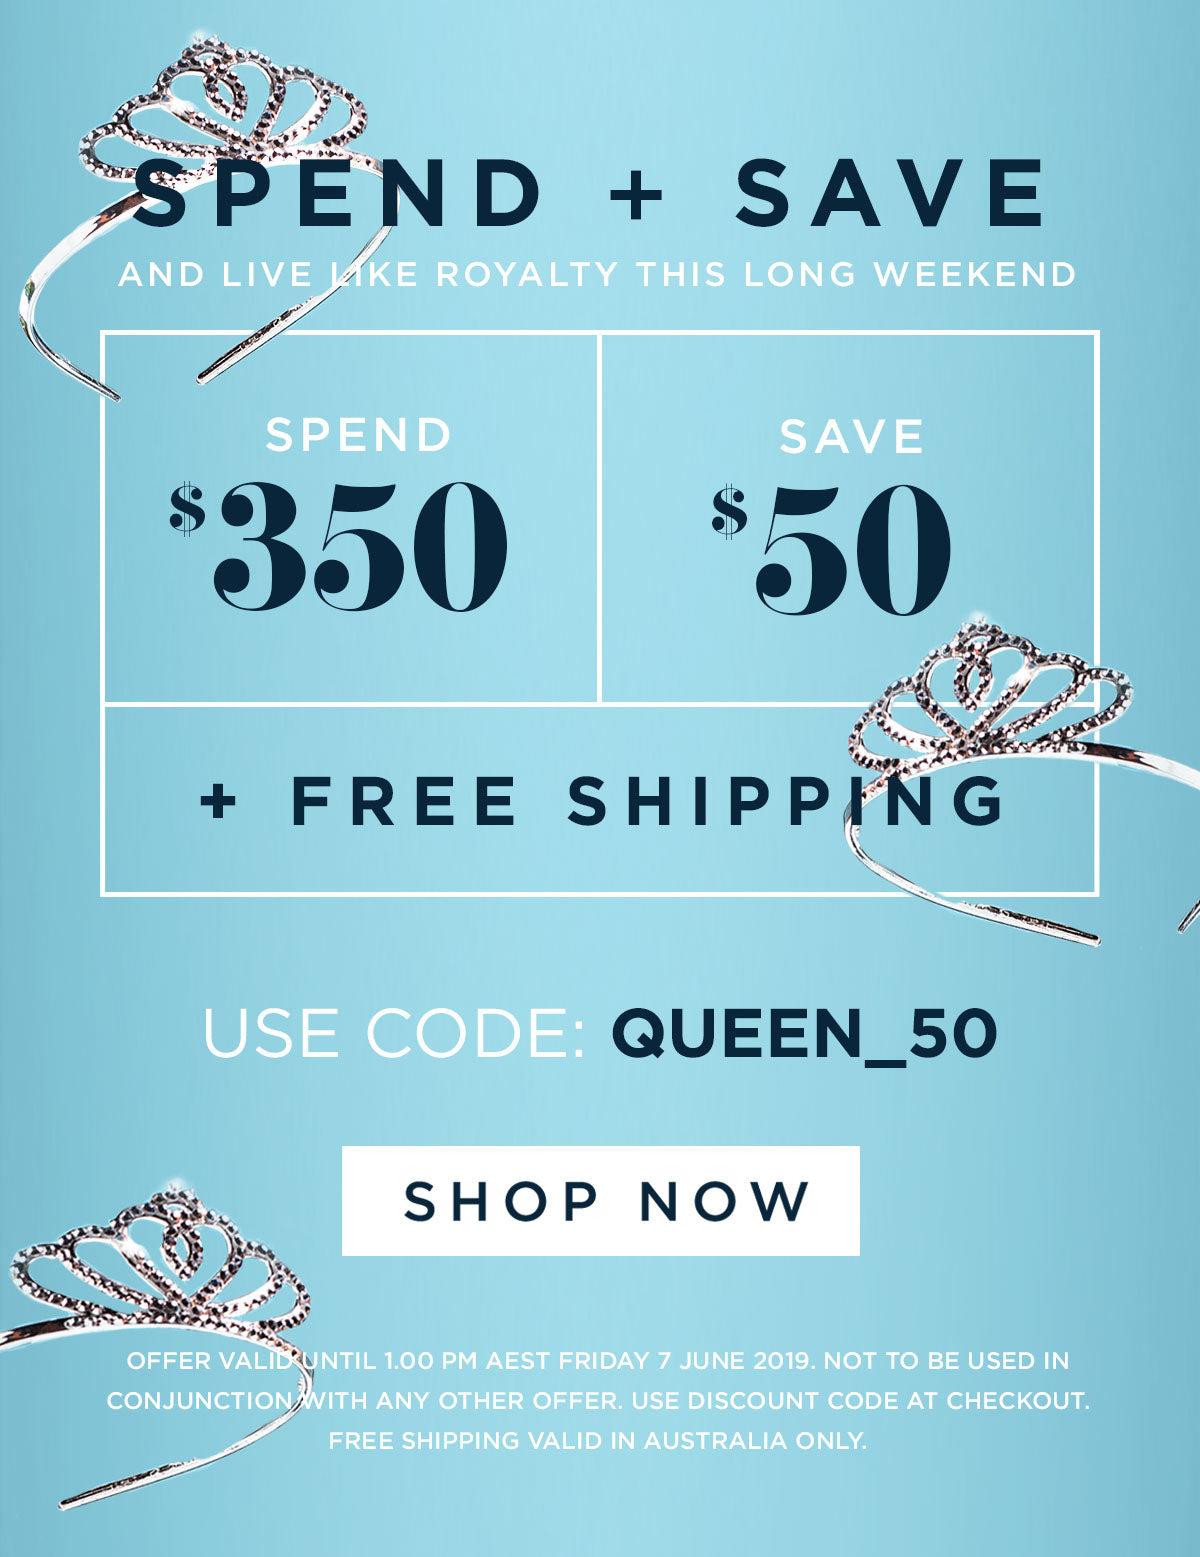 SPEND & SAVE THIS LONG WEEKEND